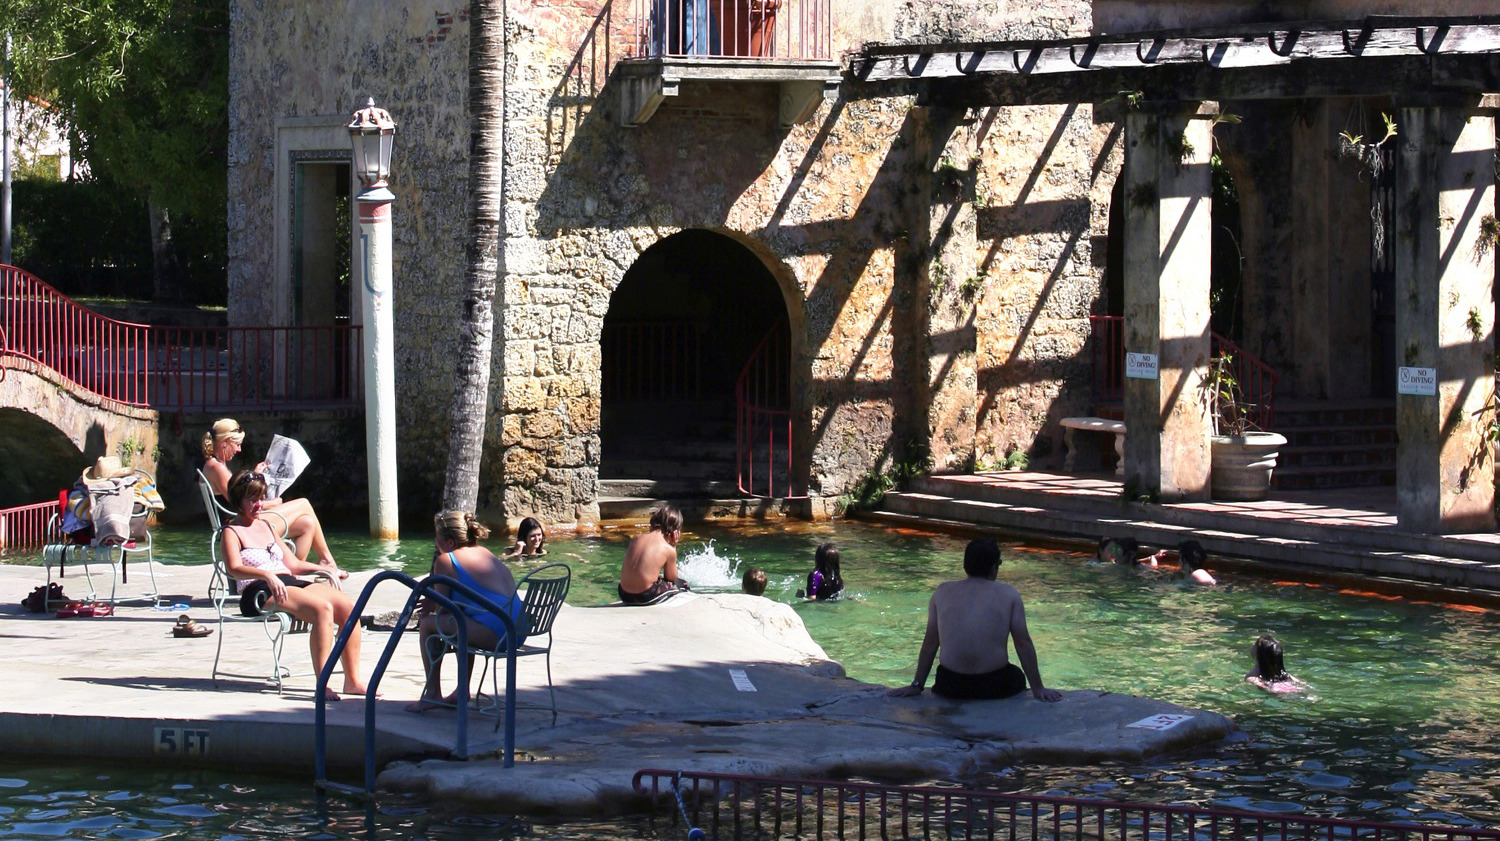 Dive into a corner of Europe at the Venetian Pool